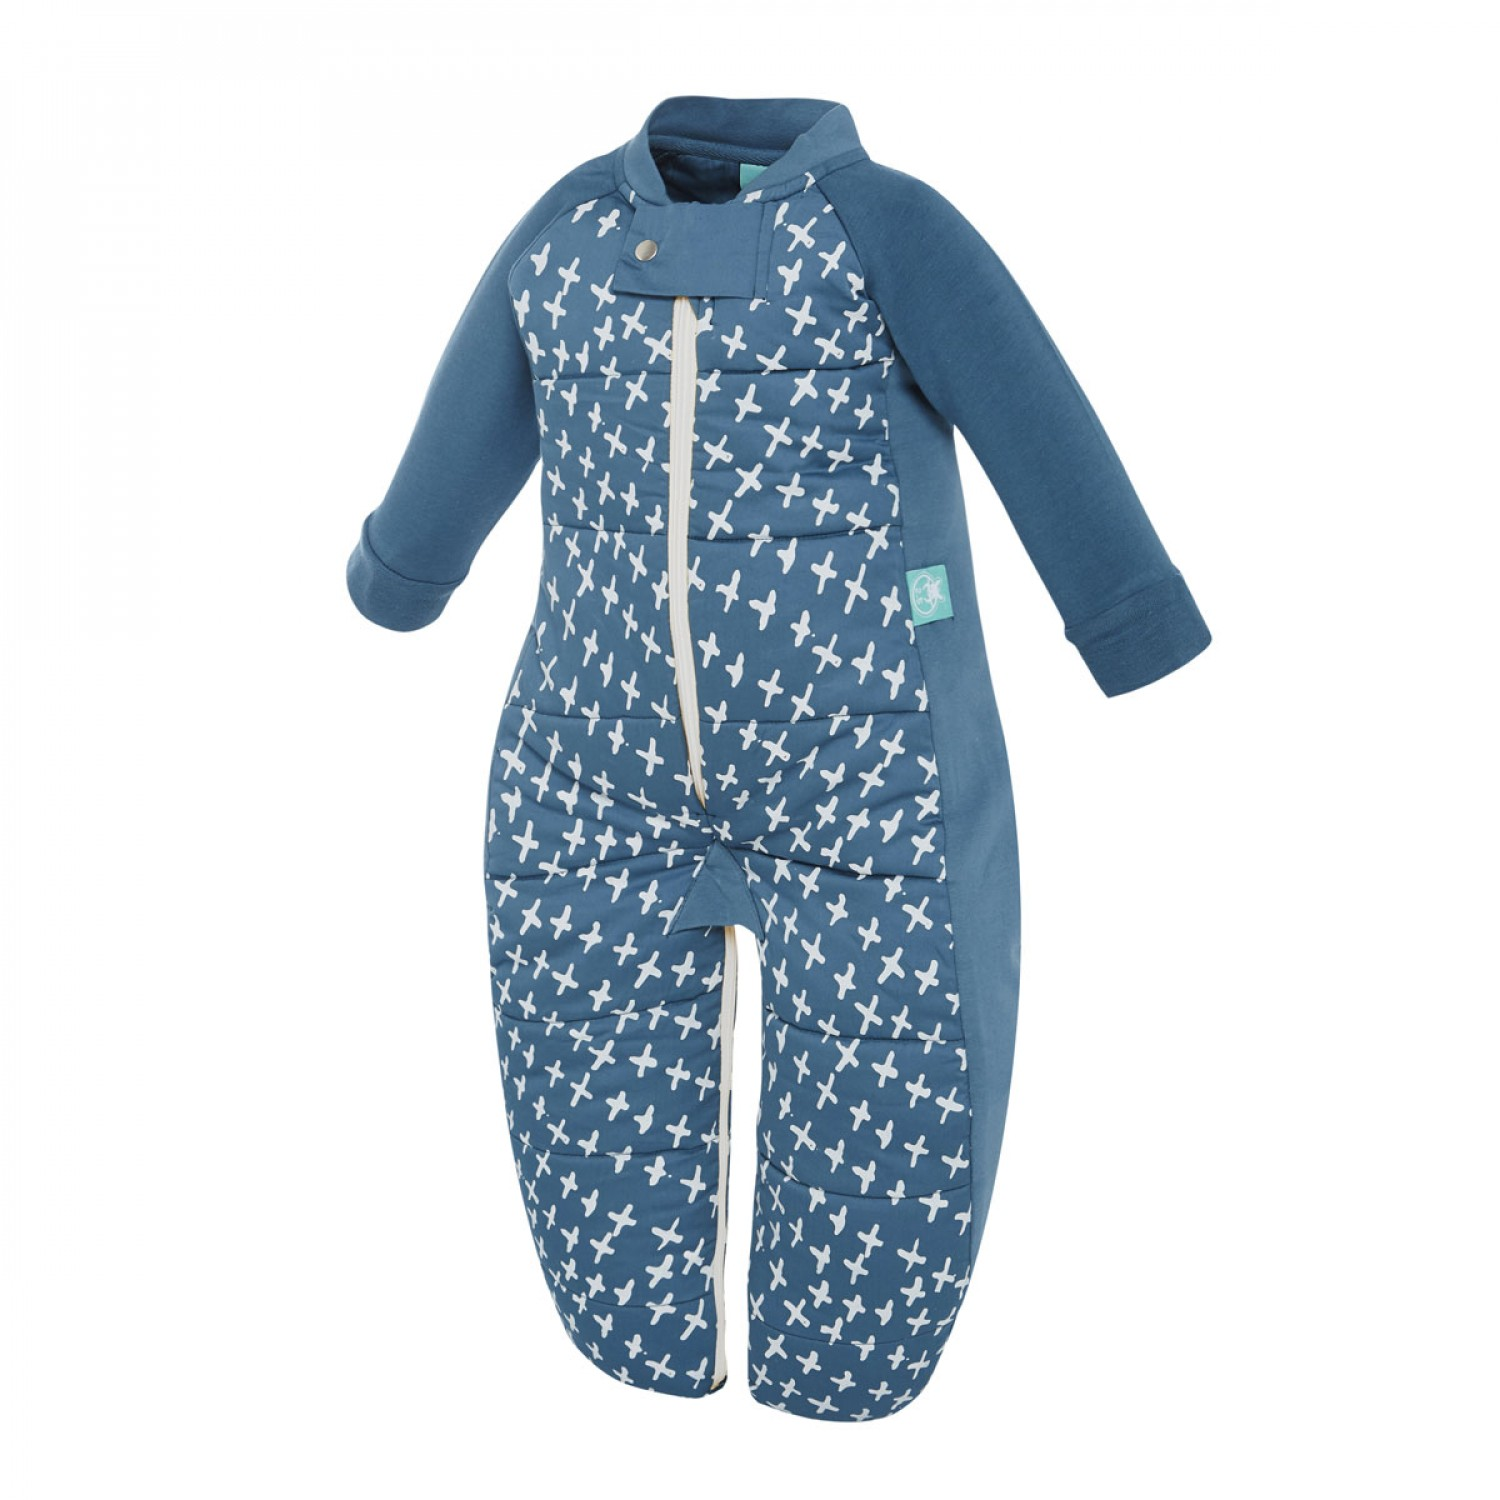 ergopouch 35 tog winter 2 in 1 sleep suit sleep bag new navy cross